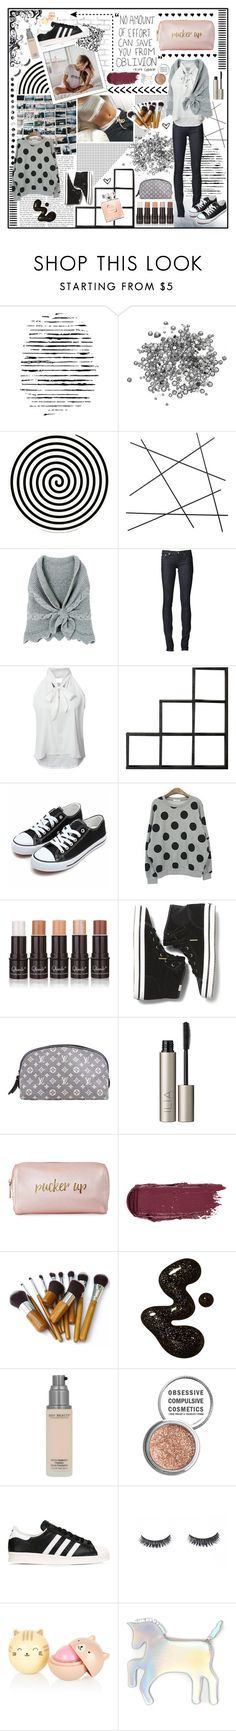 """""""all that glitters"""" by holly-elizabeth ❤ liked on Polyvore featuring WALL, Camp, Altreforme, CB2, AG Adriano Goldschmied, PAM, Ho Shop, Keds, Louis Vuitton and Ilia"""